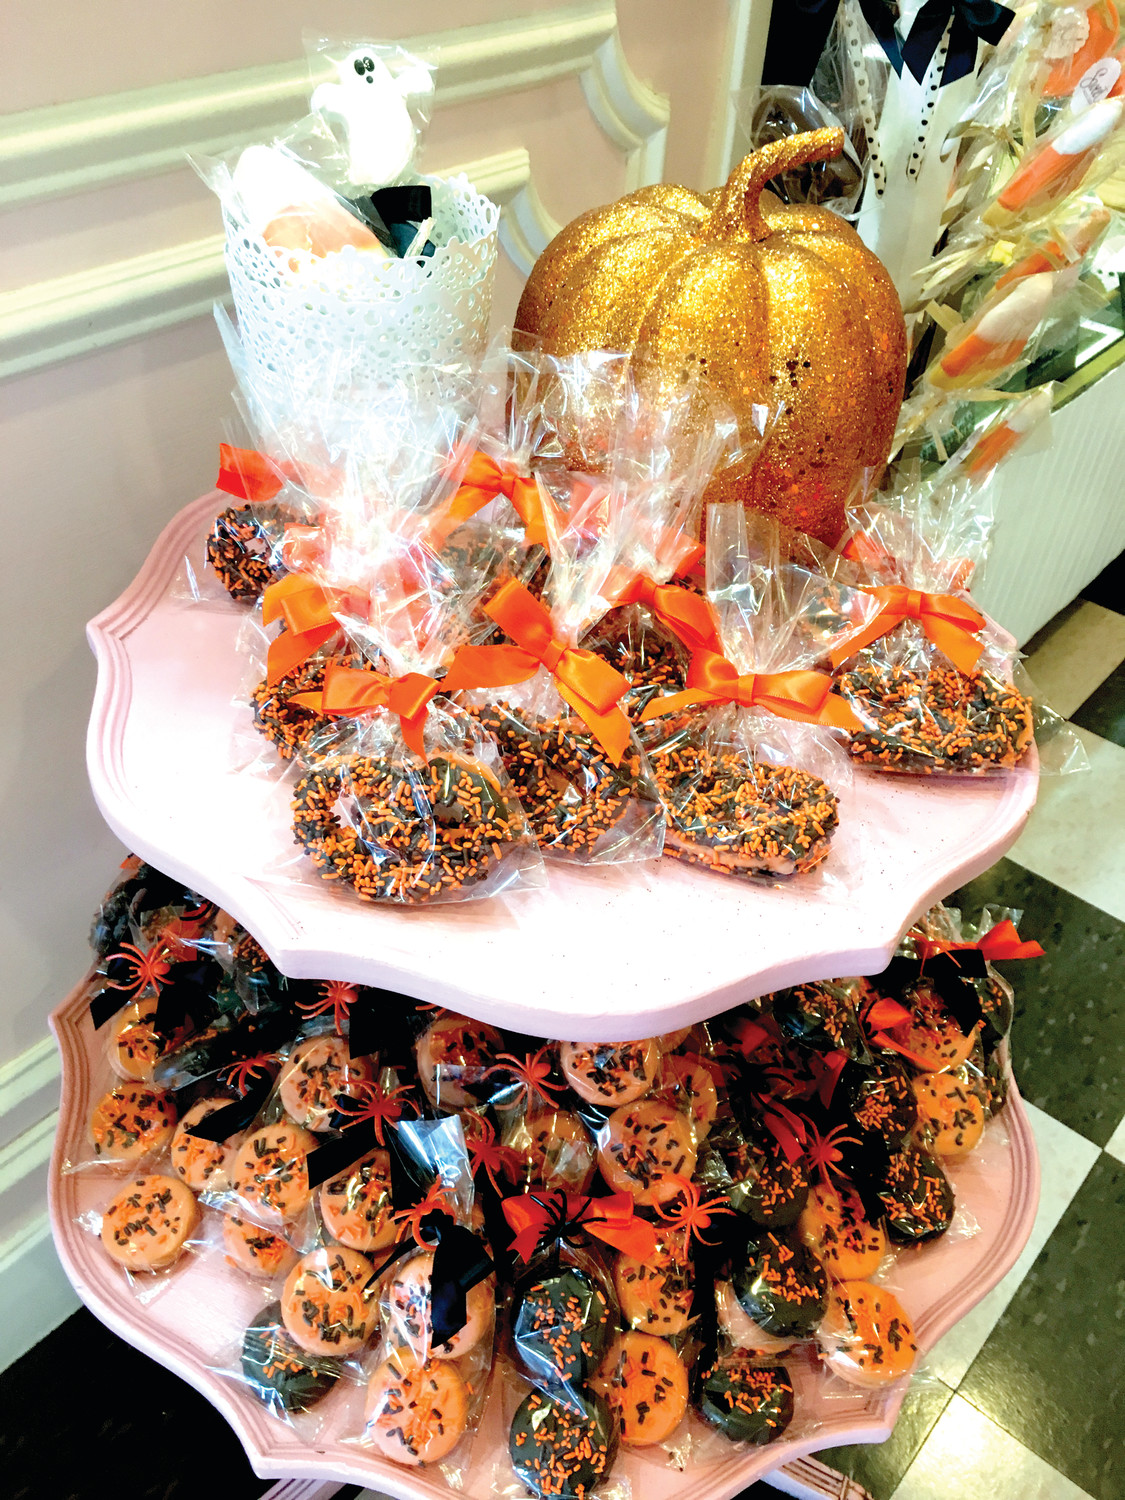 Sweet Indulgence in Cranston has the Halloween spirit in spades. Shown here is a mix of orange and black chocolate-covered pretzels and Oreos, with plenty of spooky sprinkles on top.